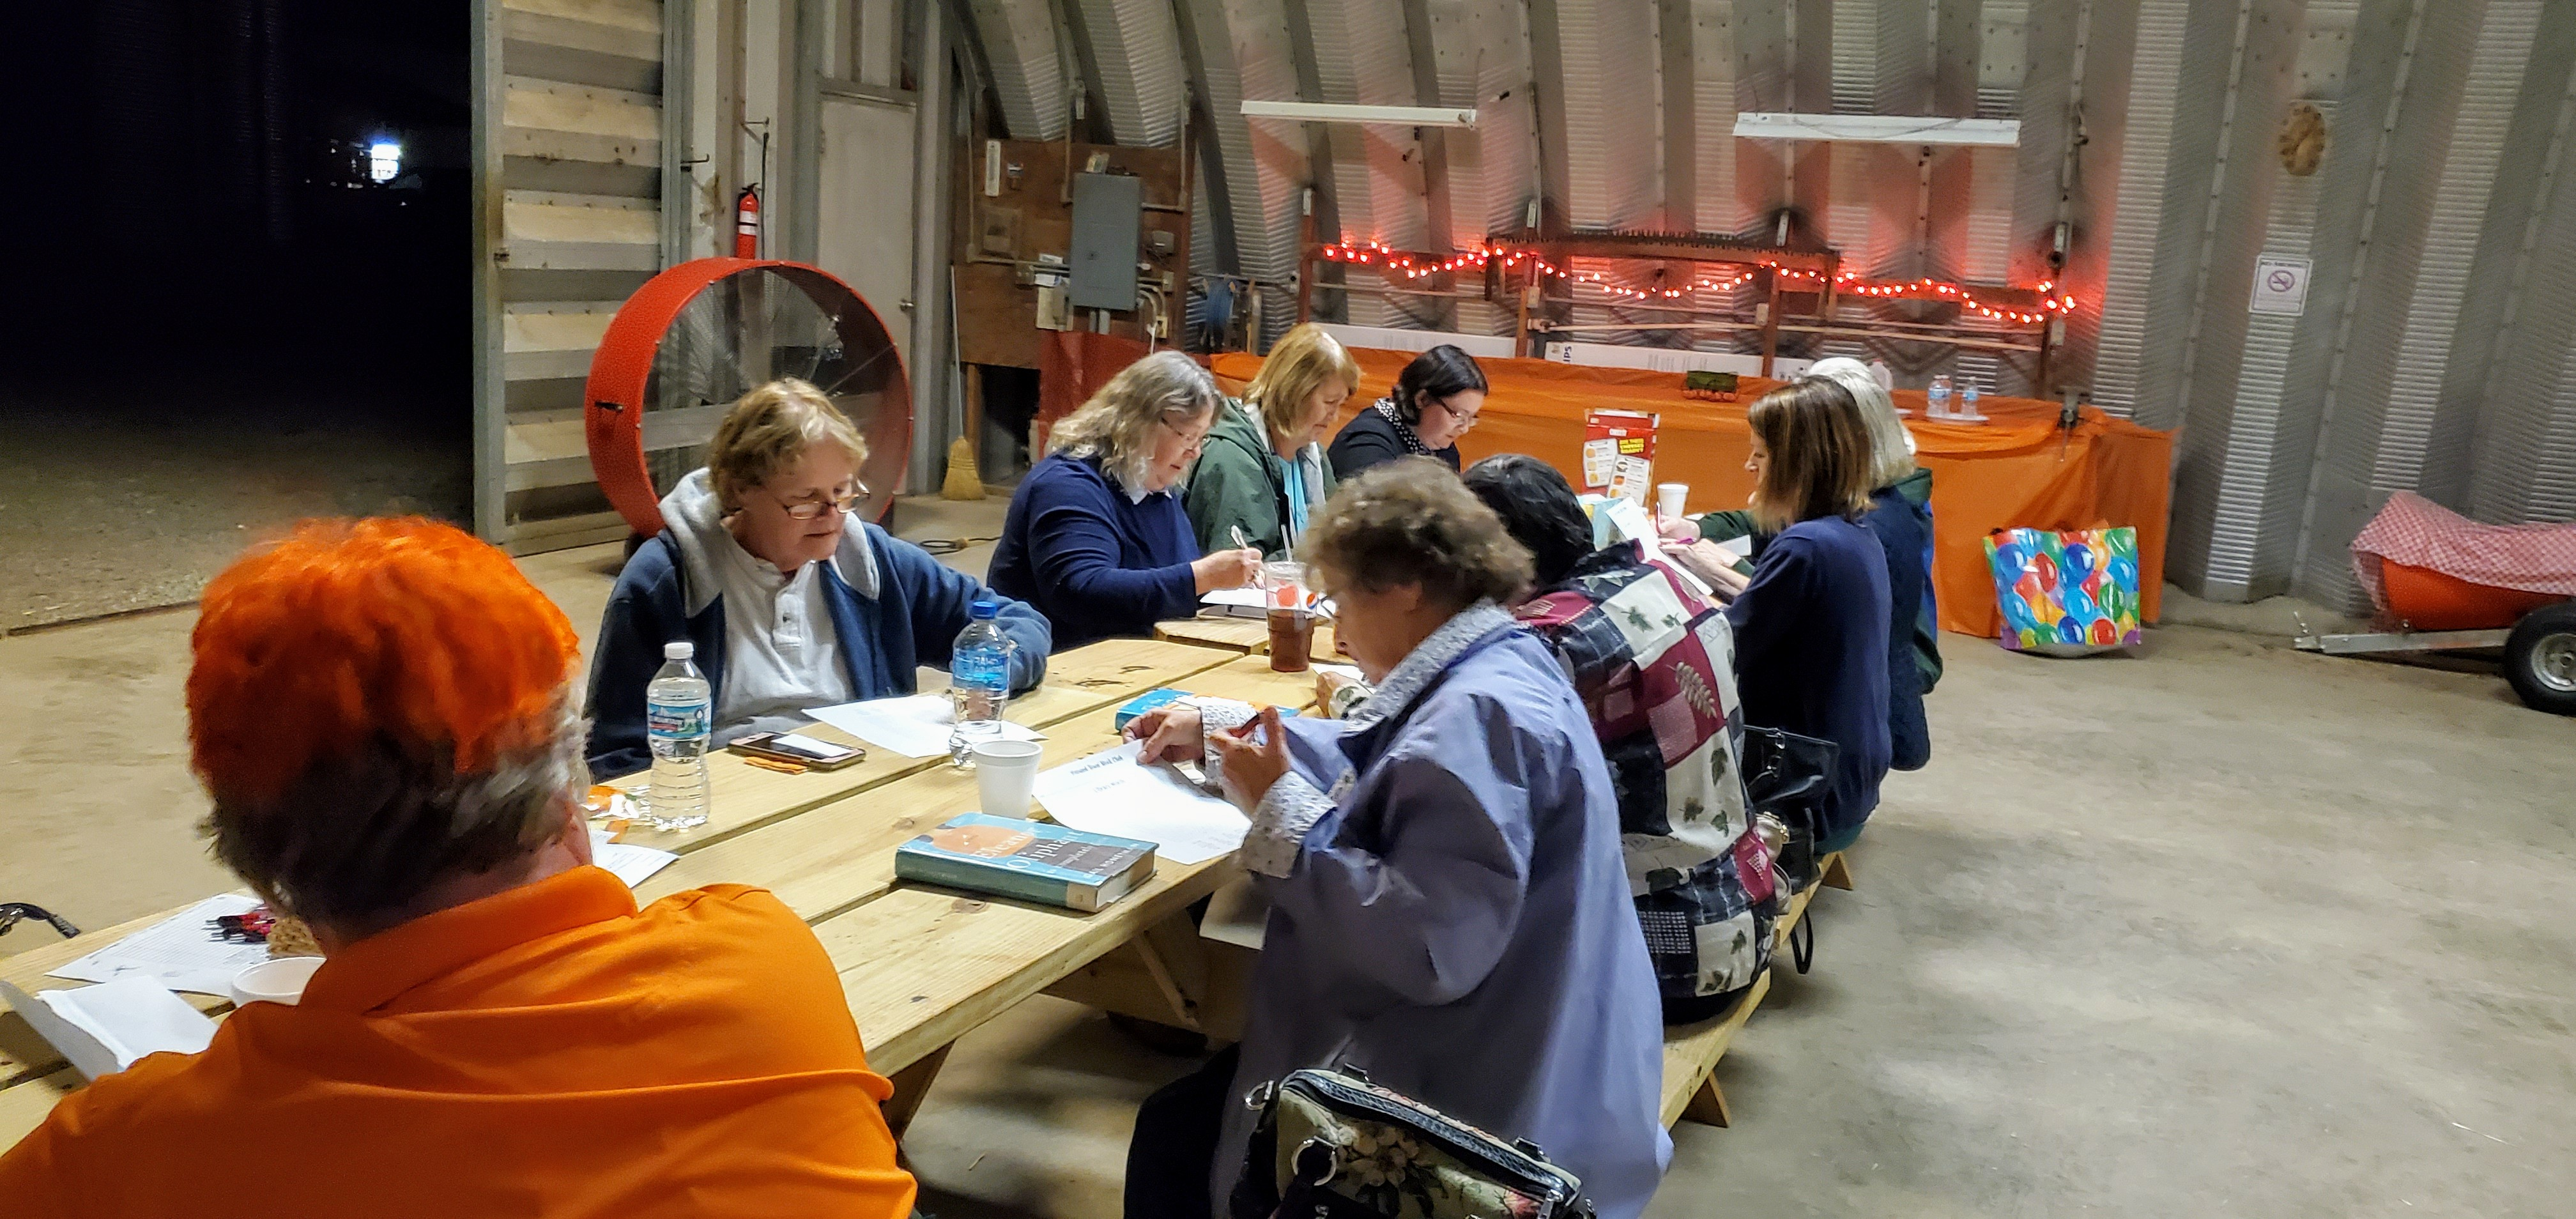 12 members attended the September 'Around Town' Book Club meeting, which was held at Lohstroh Farm for the first time!